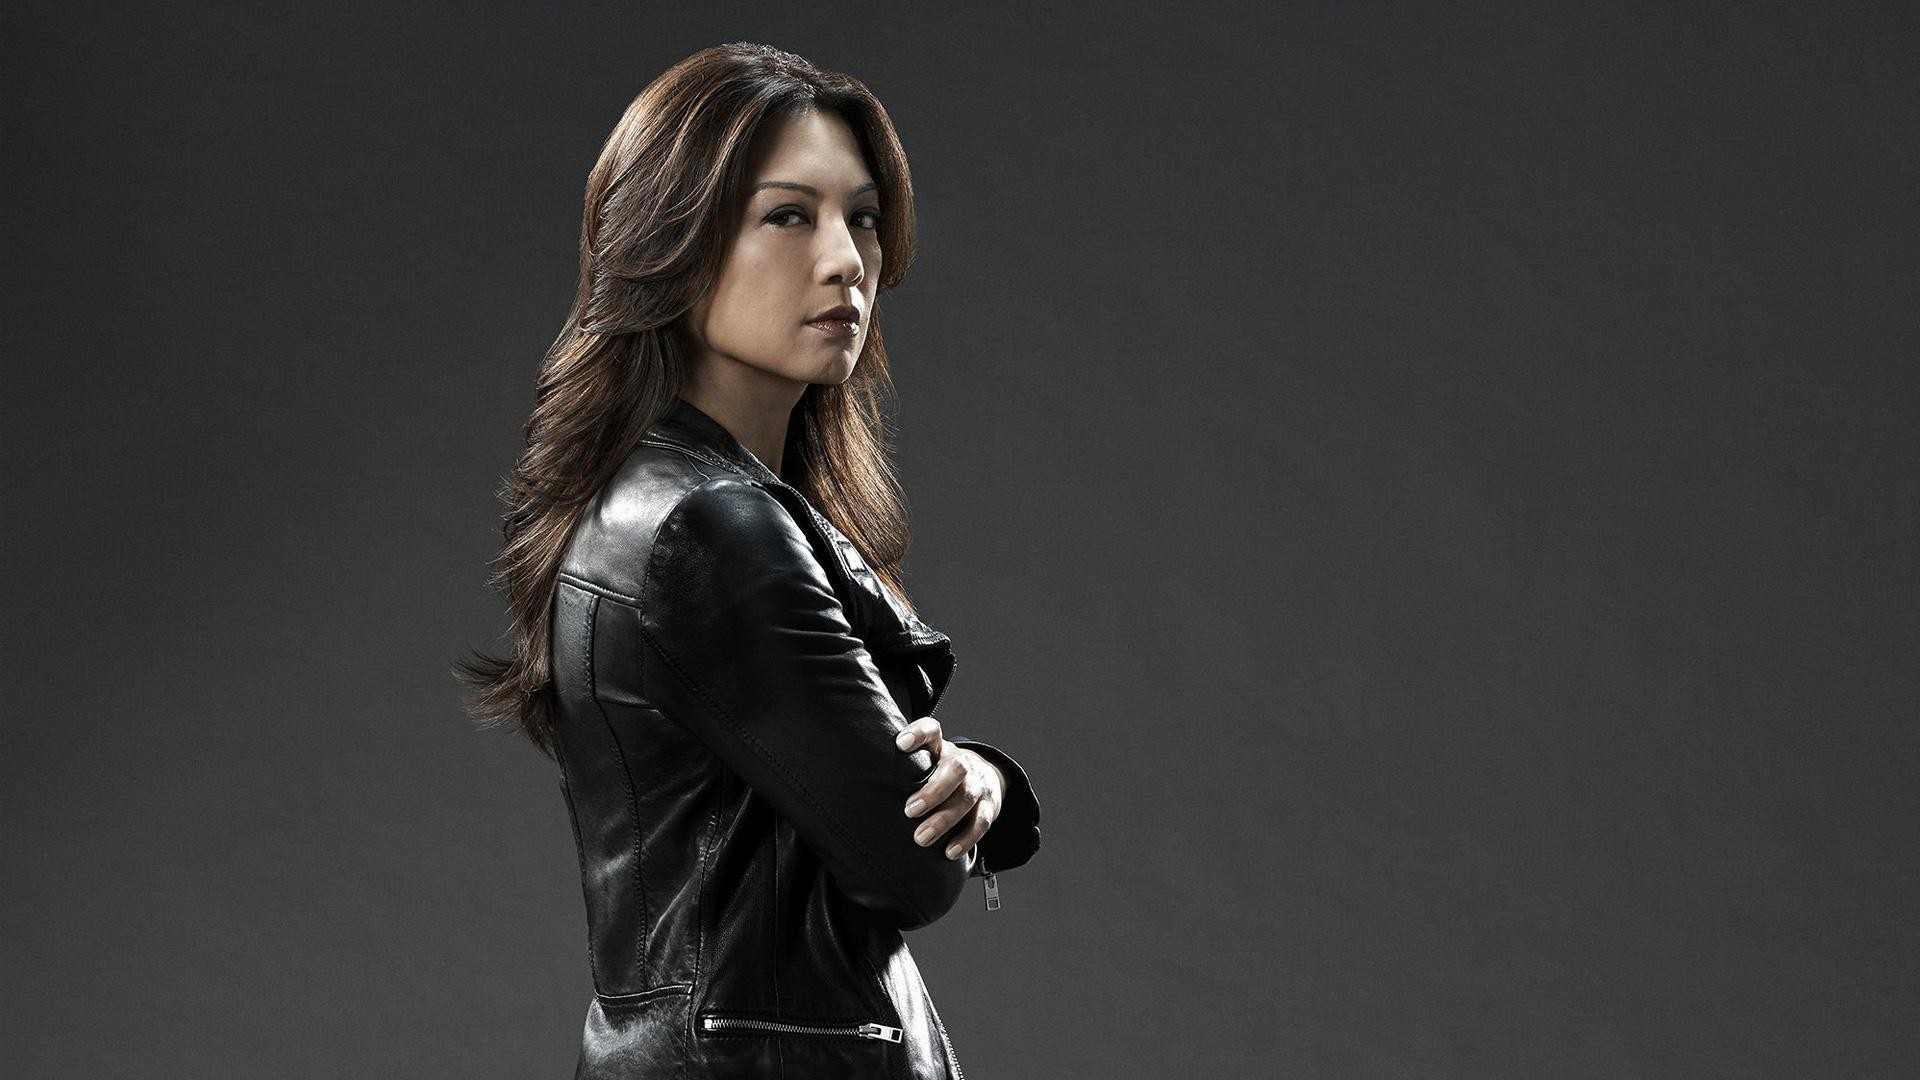 wallpaper.wiki-Pictures-Agents-Of-Shield-PIC-WPC0014040